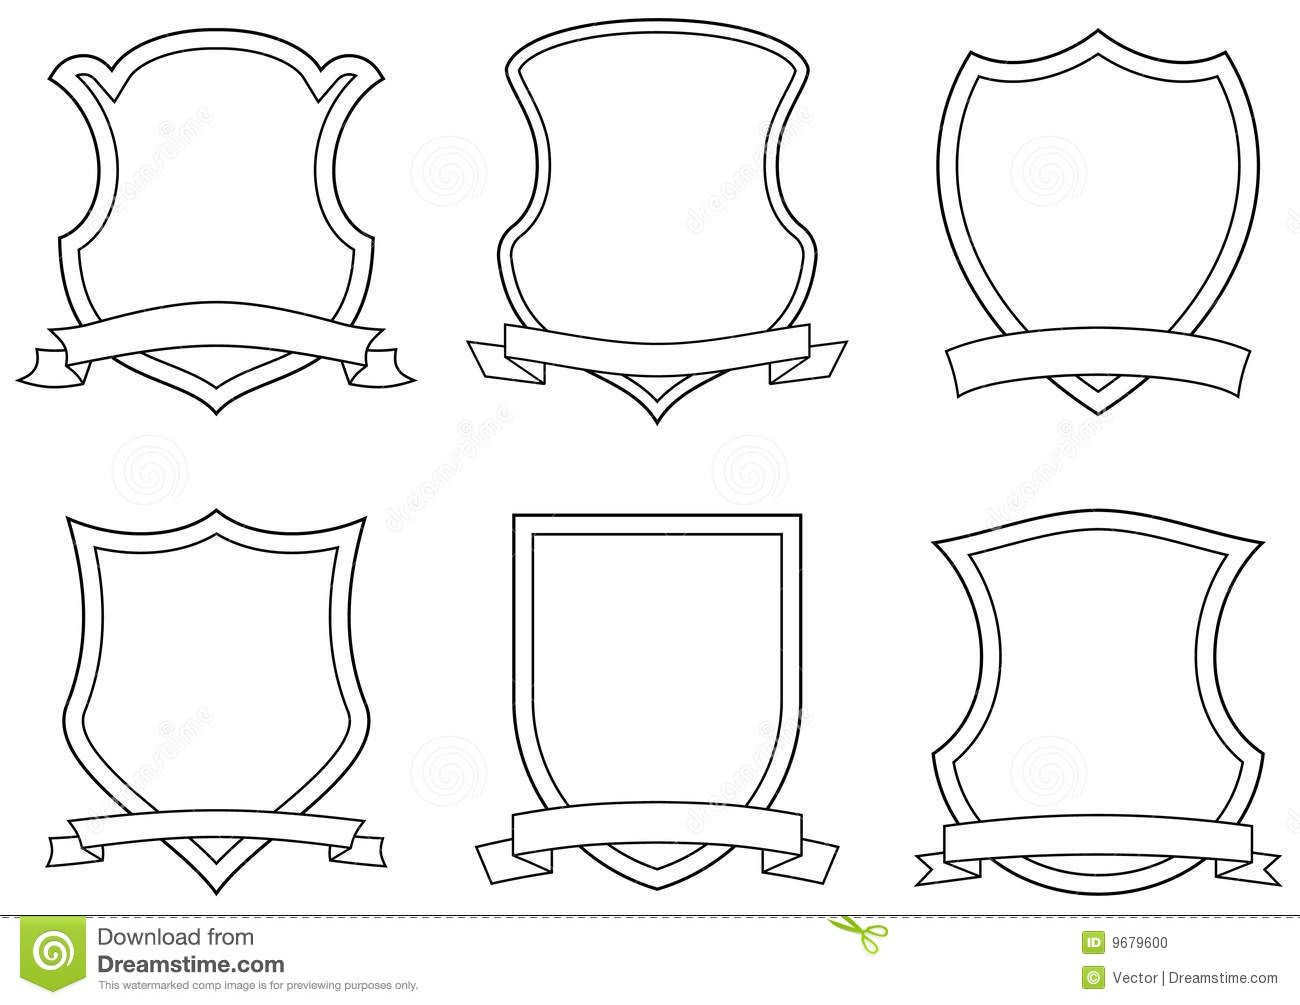 make your own coat of arms template - coat of arms recherche google coats of arms